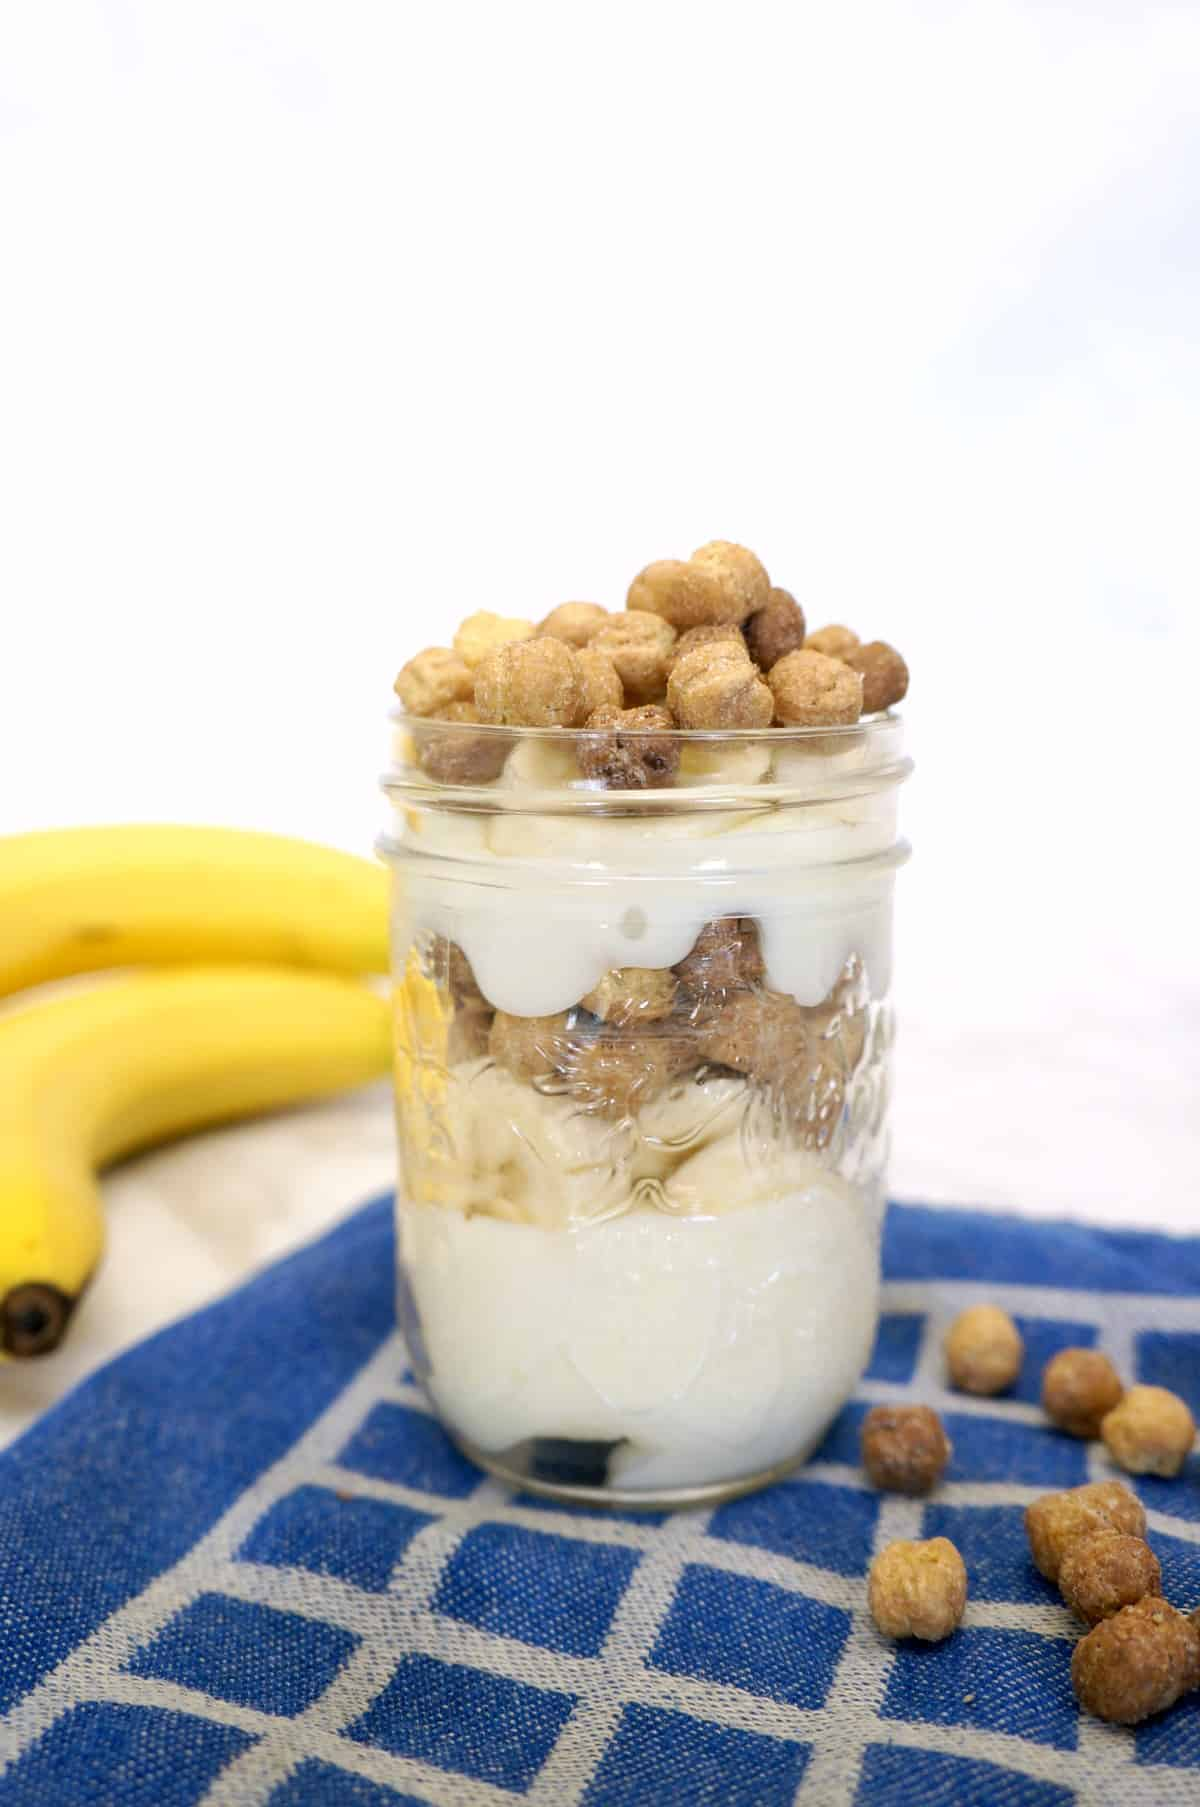 Make Ahead Peanut Butter Banana Yogurt Parfait with Malt-o-Meal cereal. Perfect after school snack that you can make in the morning.